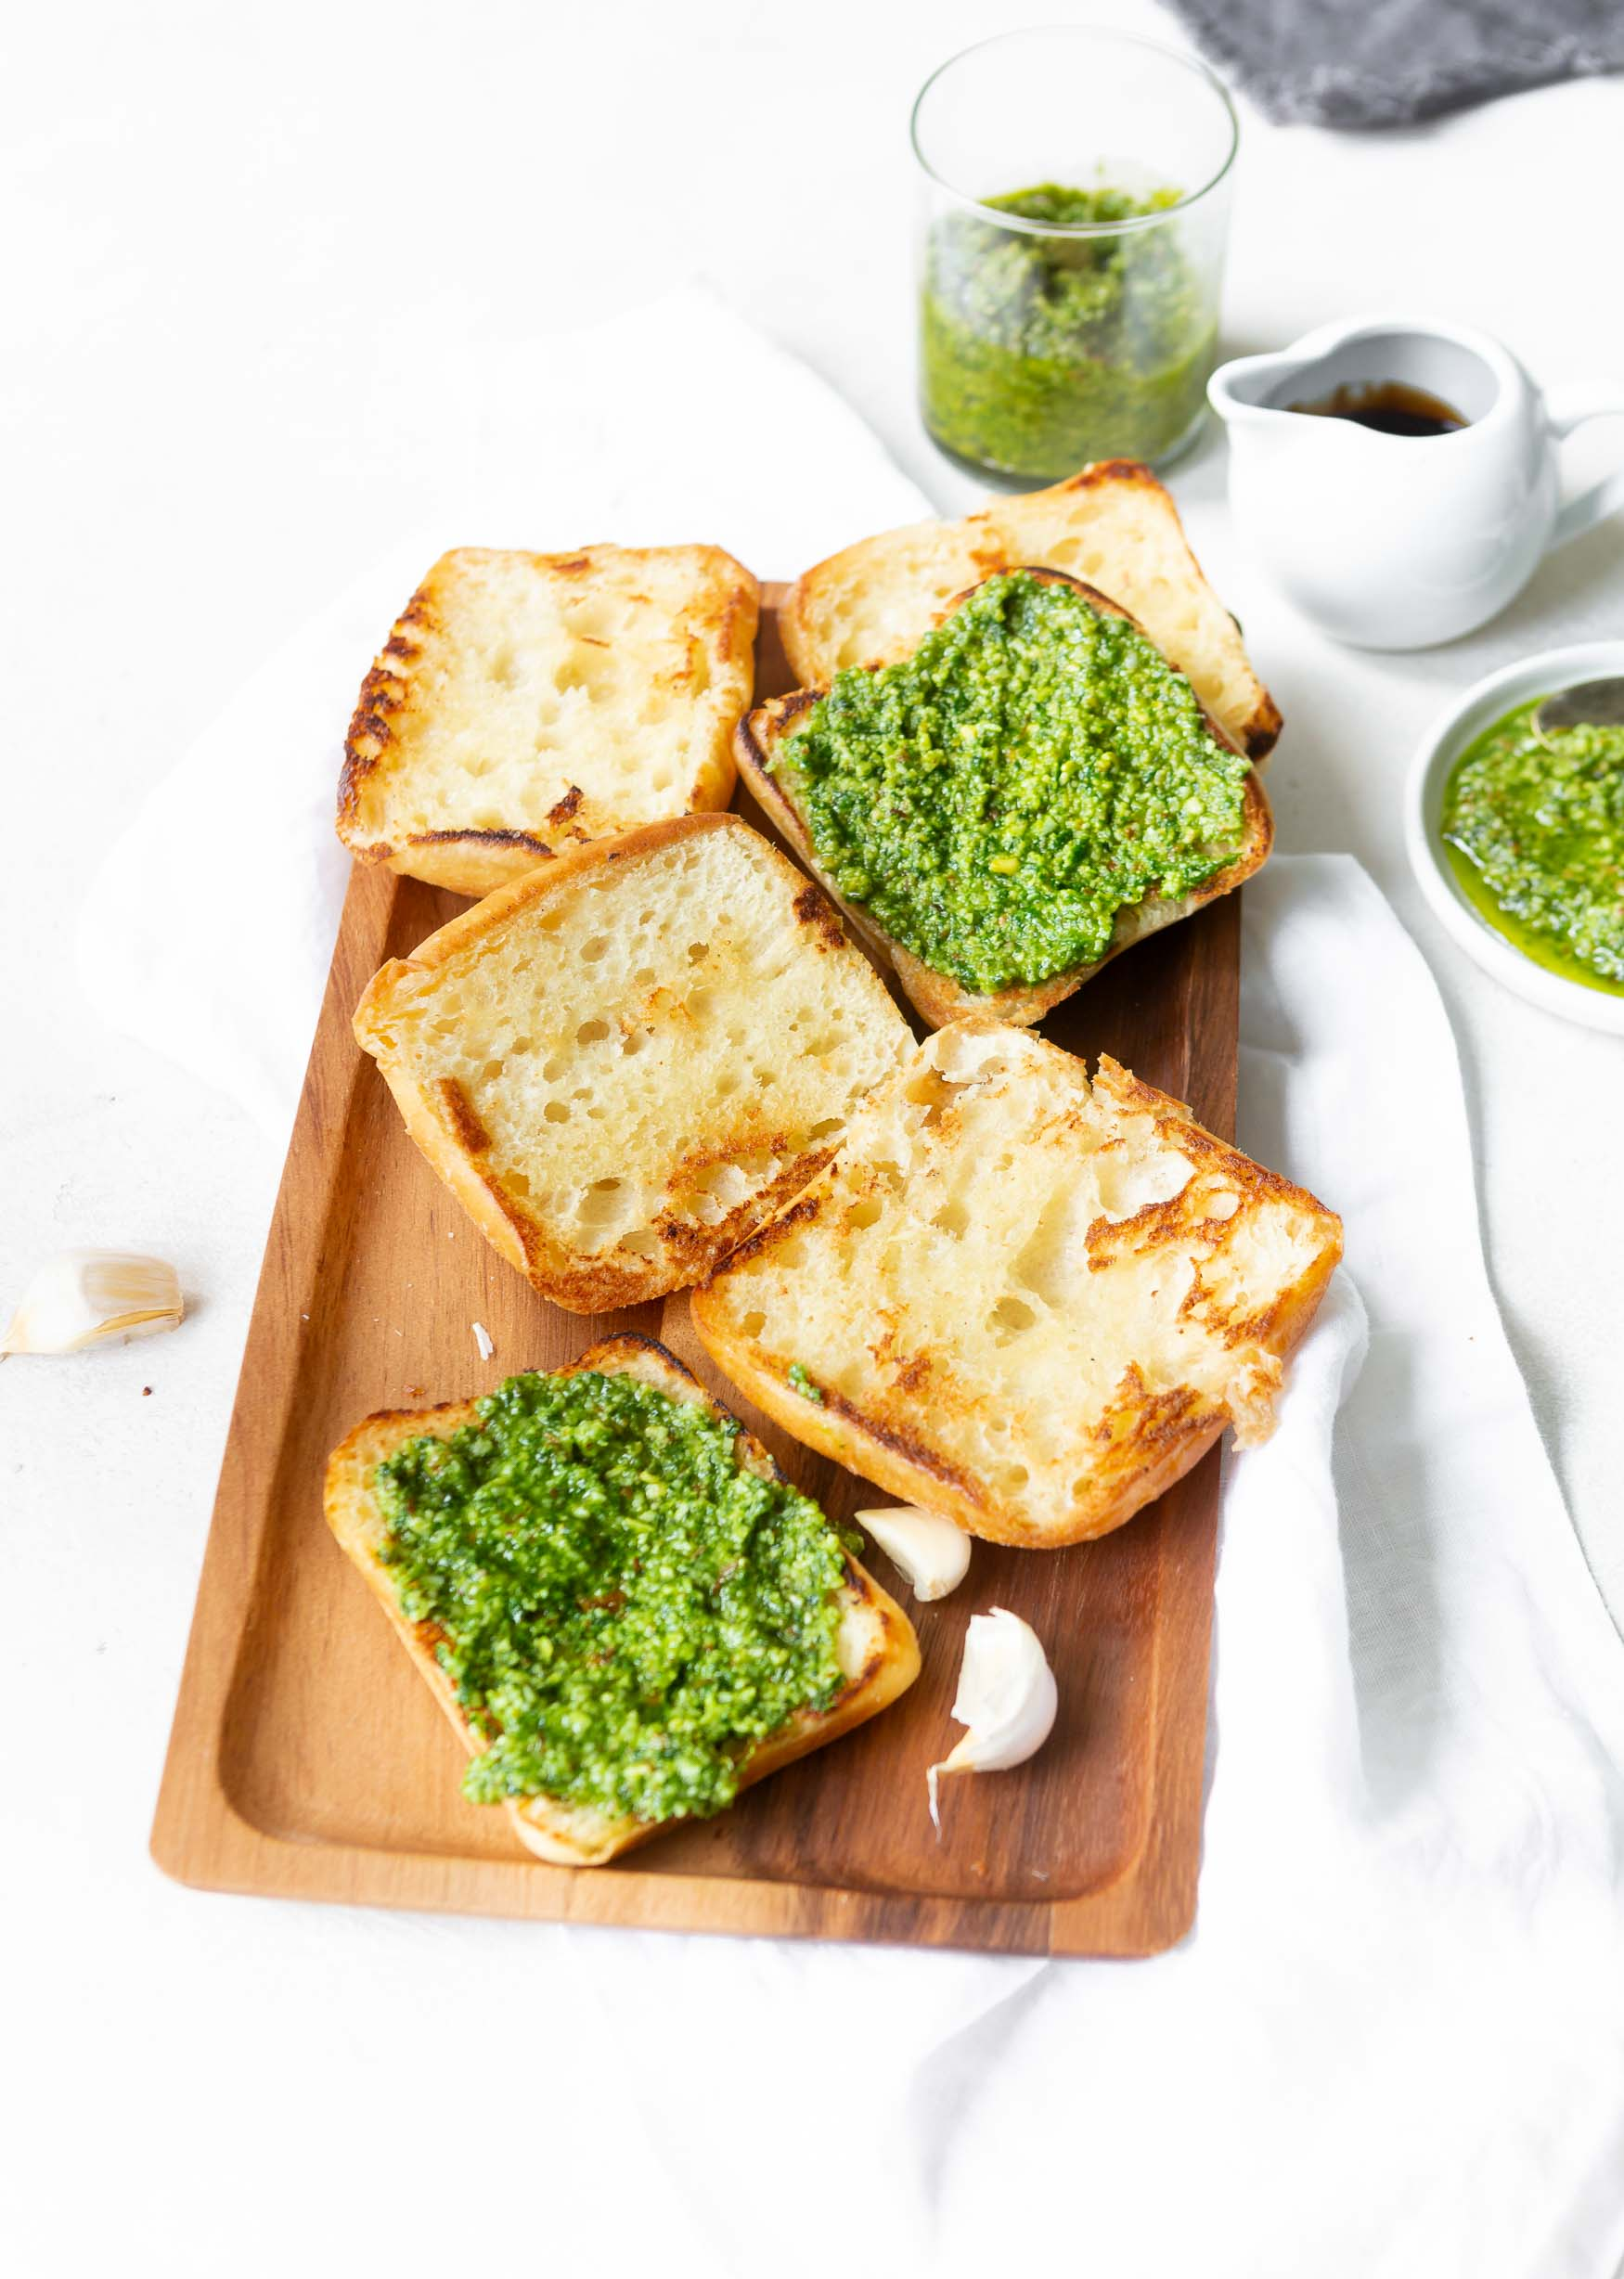 a photo of 3 ciabatta rolls sliced in half and toasted sitting face up on a wooden serving tray and 2 of the 6 slices have pesto spread on them.